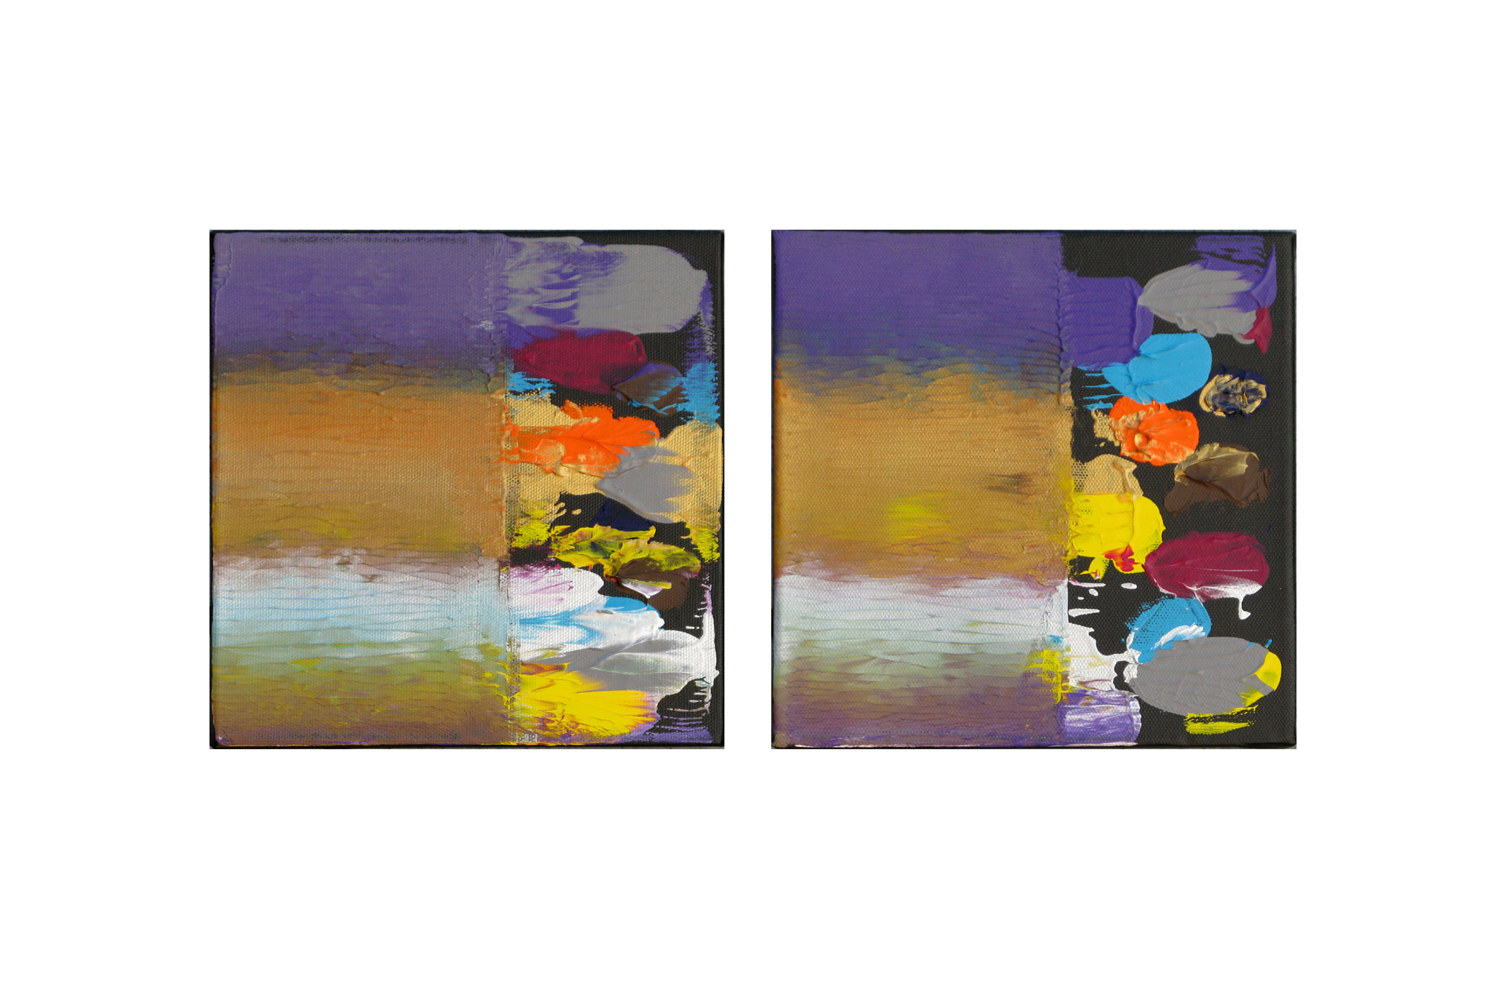 Acrylic painting Color  Storm Forecast, 8x8 inches each by Hooshang Khorasani